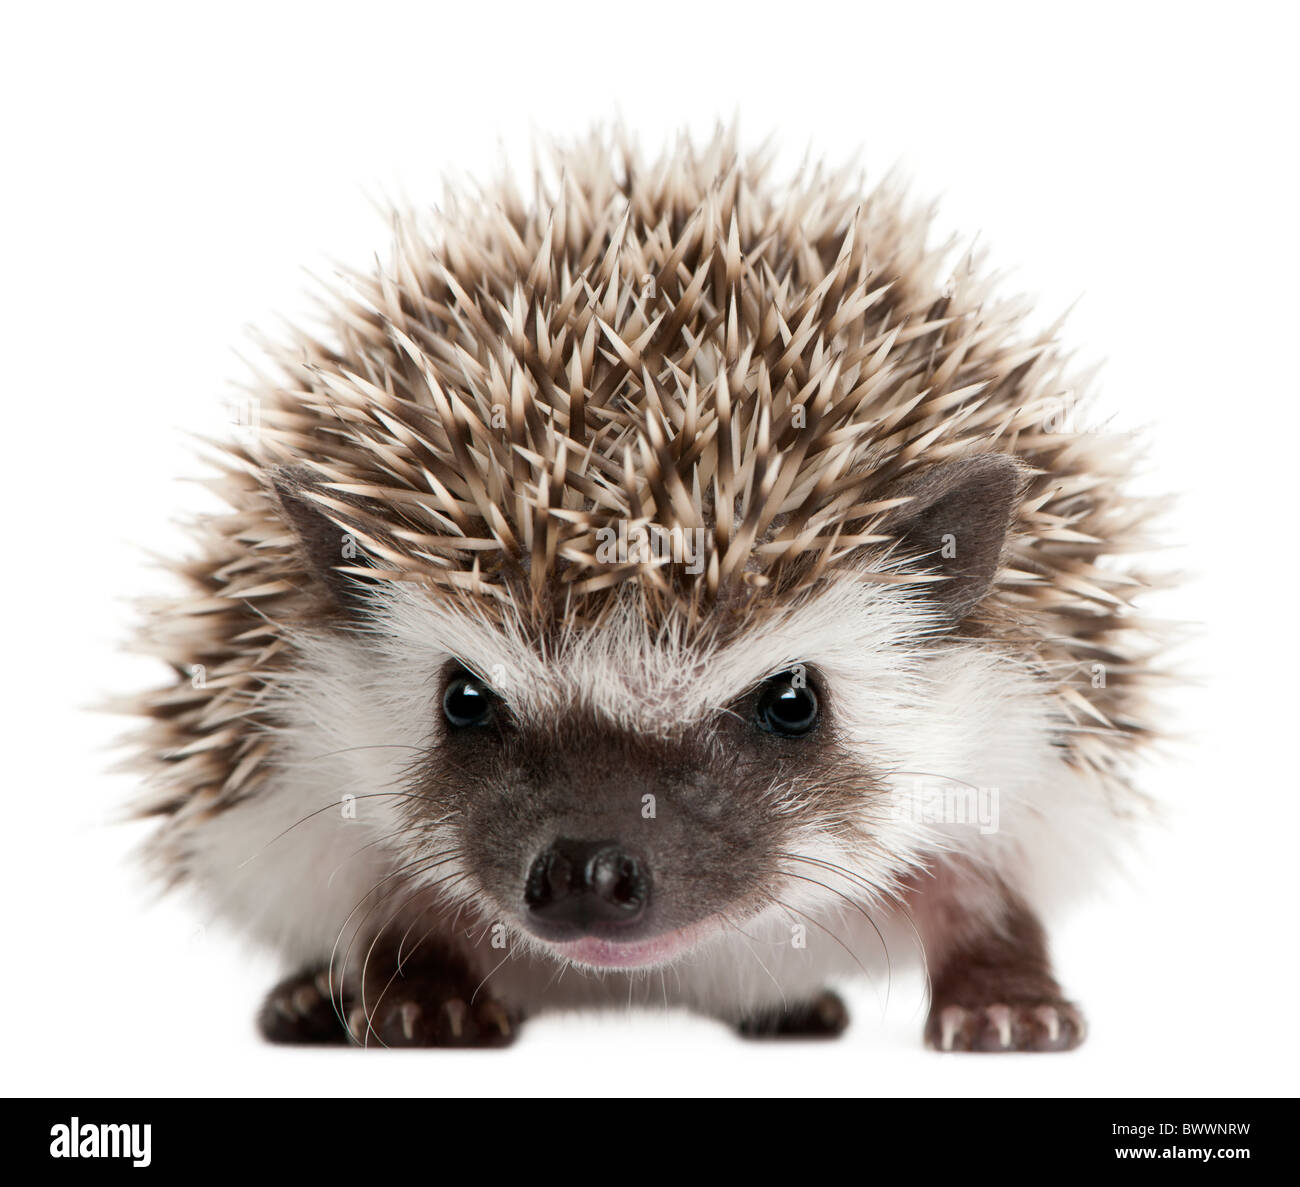 Four-toed Hedgehog, Atelerix albiventris, 3 weeks old, in front of white background - Stock Image